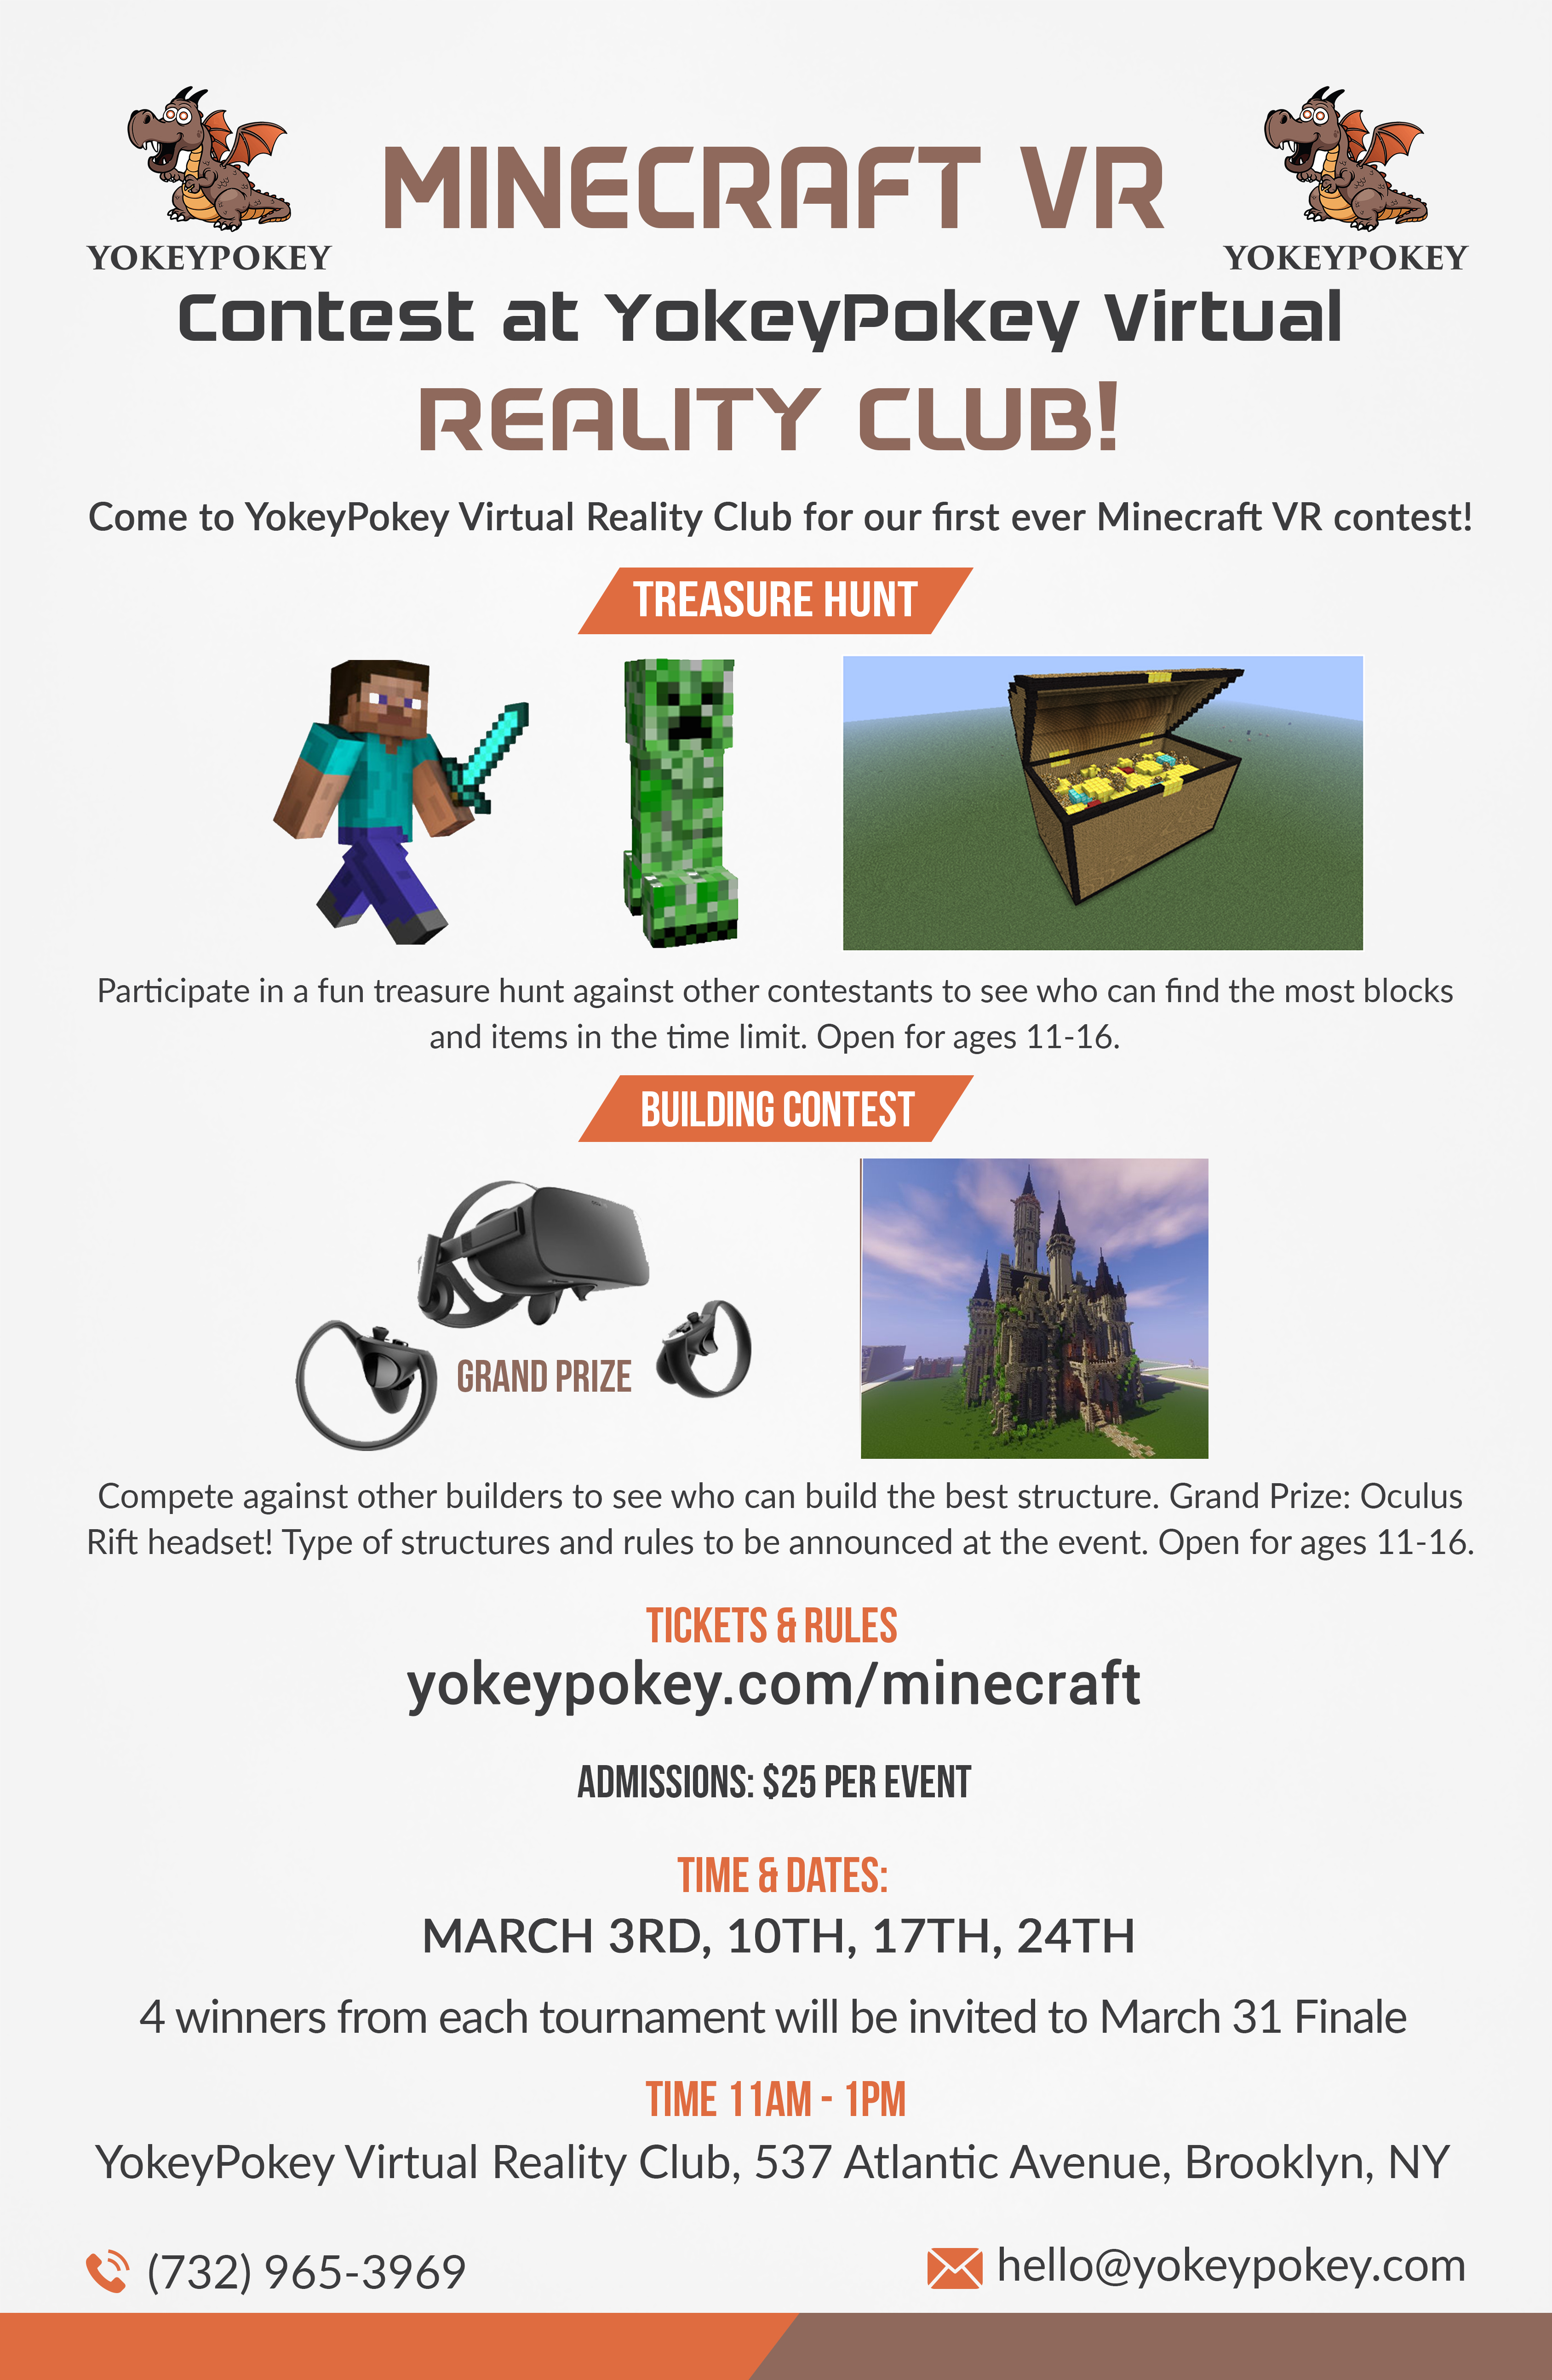 Minecraft VR Tournament - Grand Prize Oculus Rift